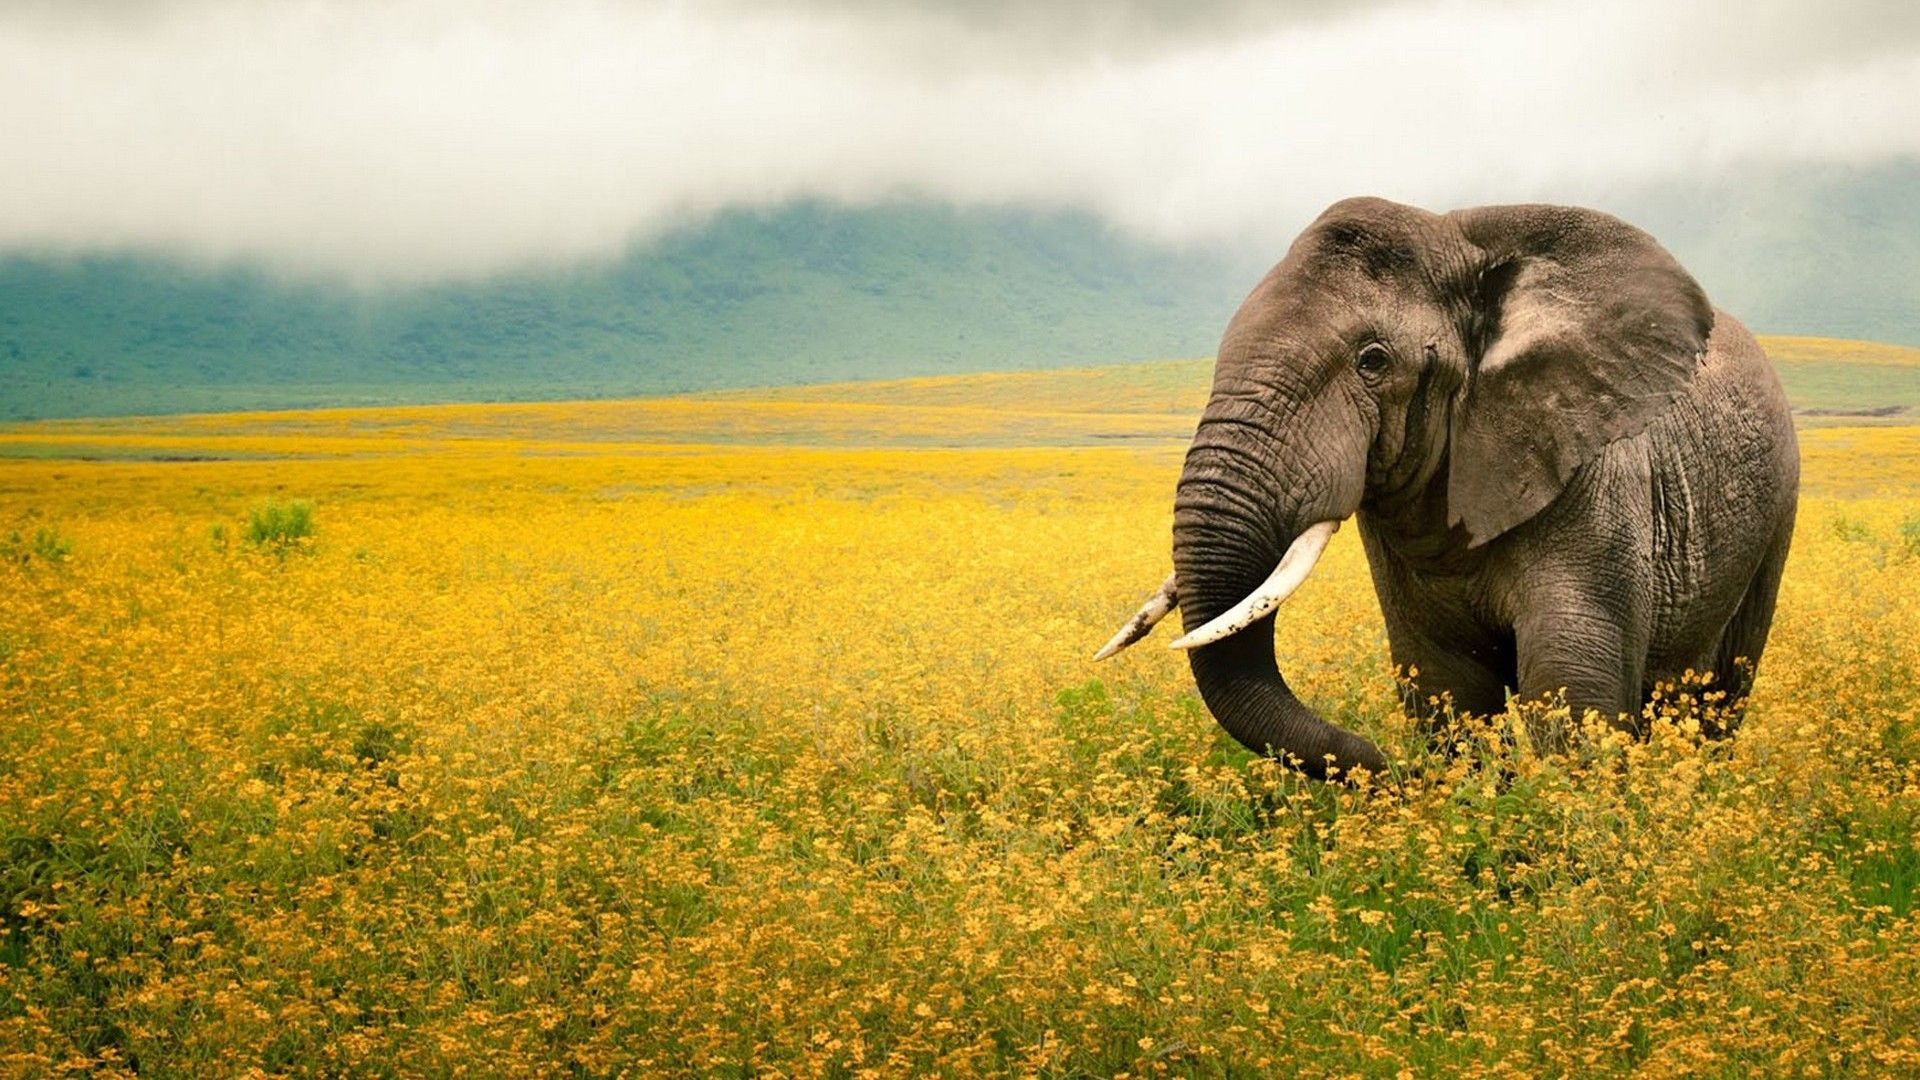 Landscapes Nature Animals National Geographic Wallpaper Elephant Images Elephant Wallpaper Elephant